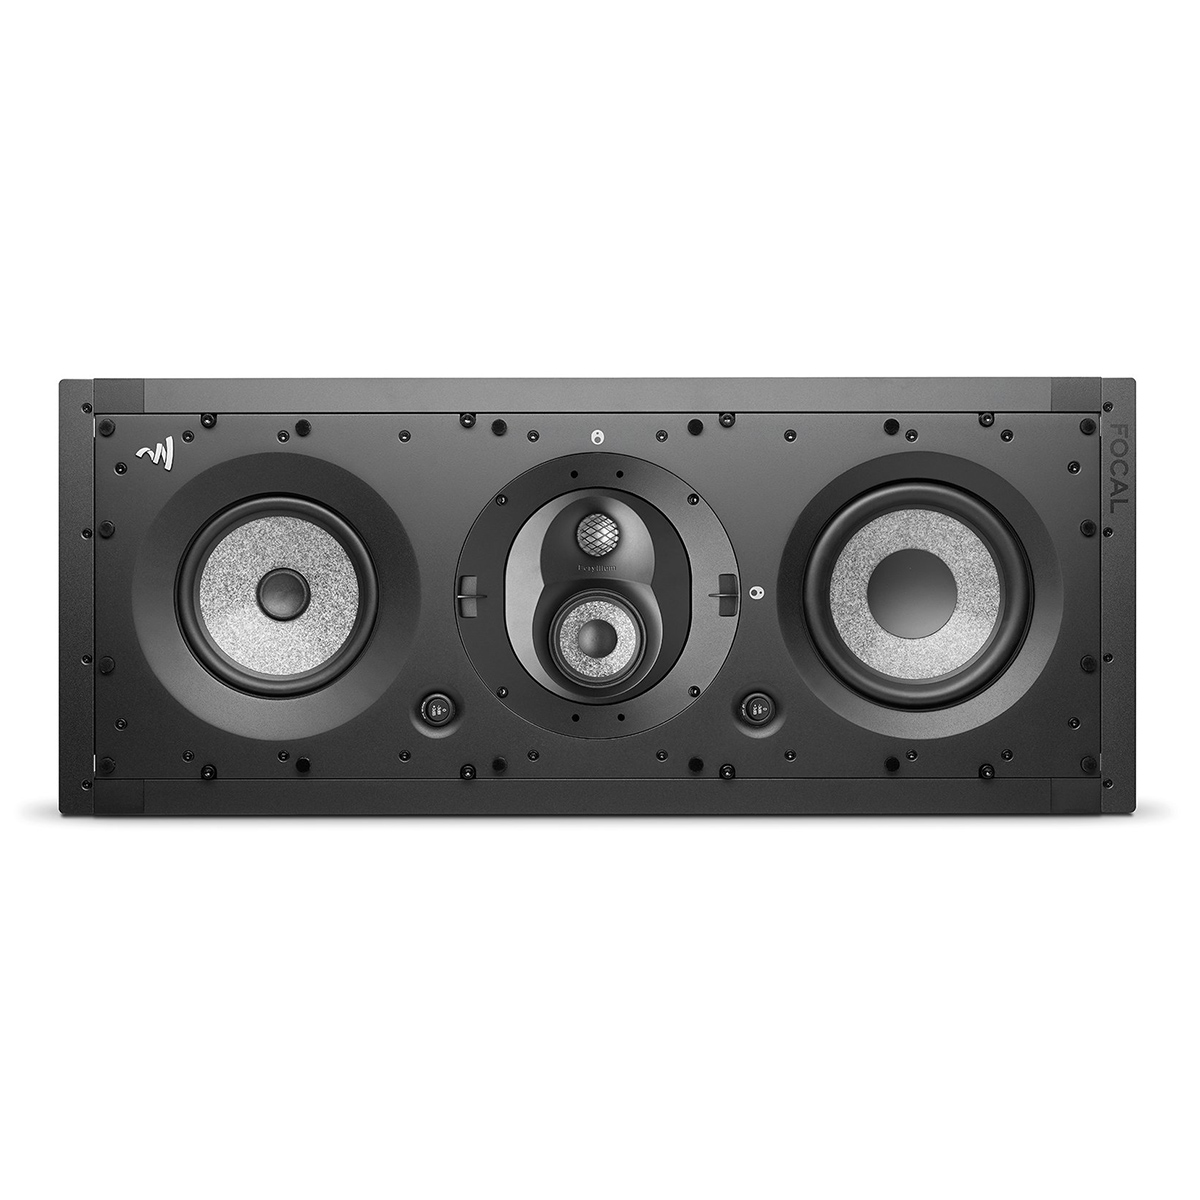 Focal Iwlcr6 Front Life Style Store